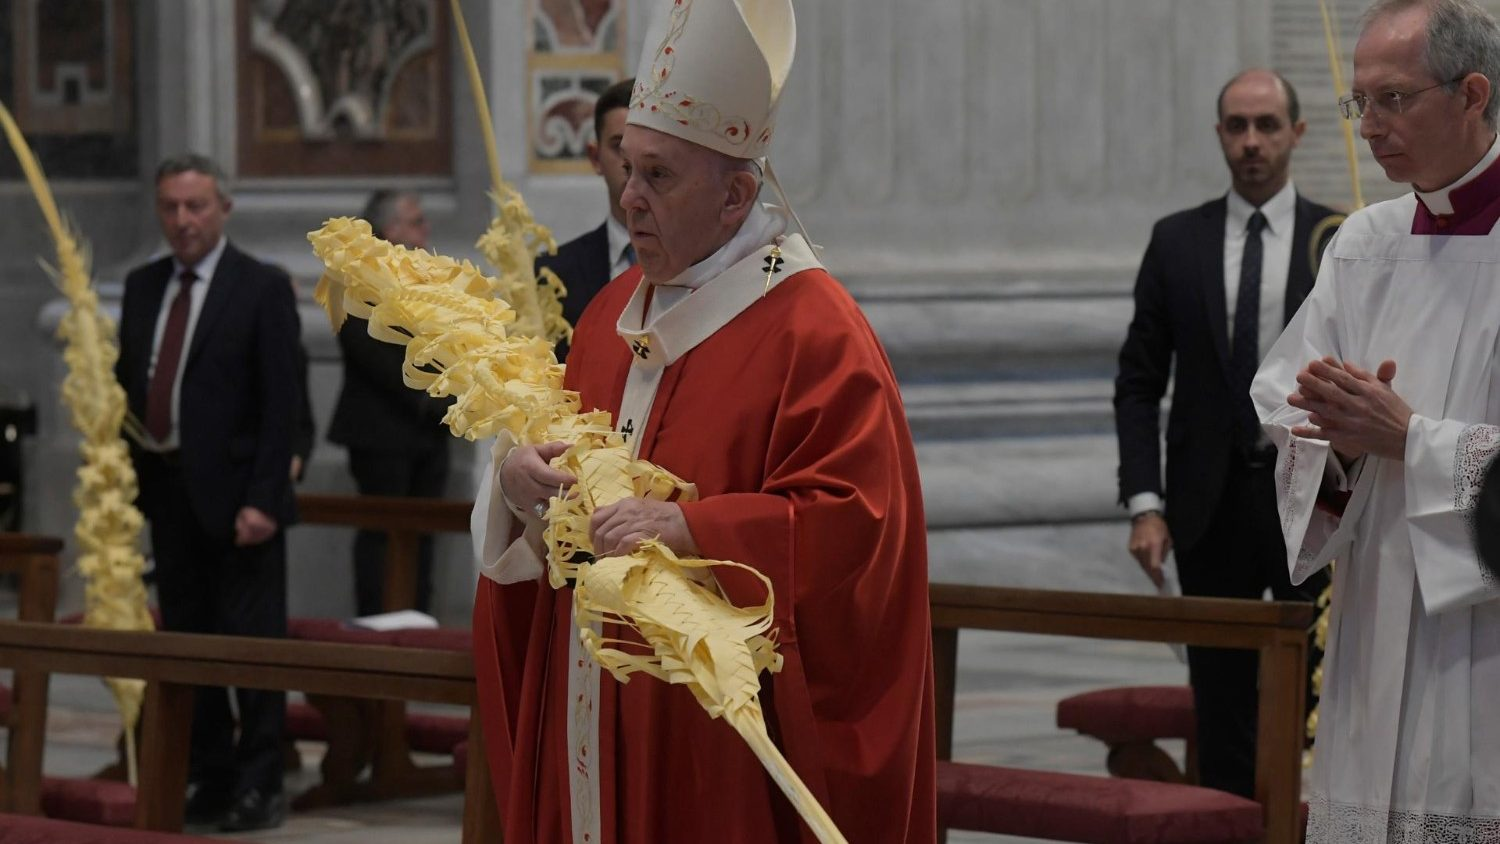 Pope Palm Sunday Homily: Full Text - Vatican News